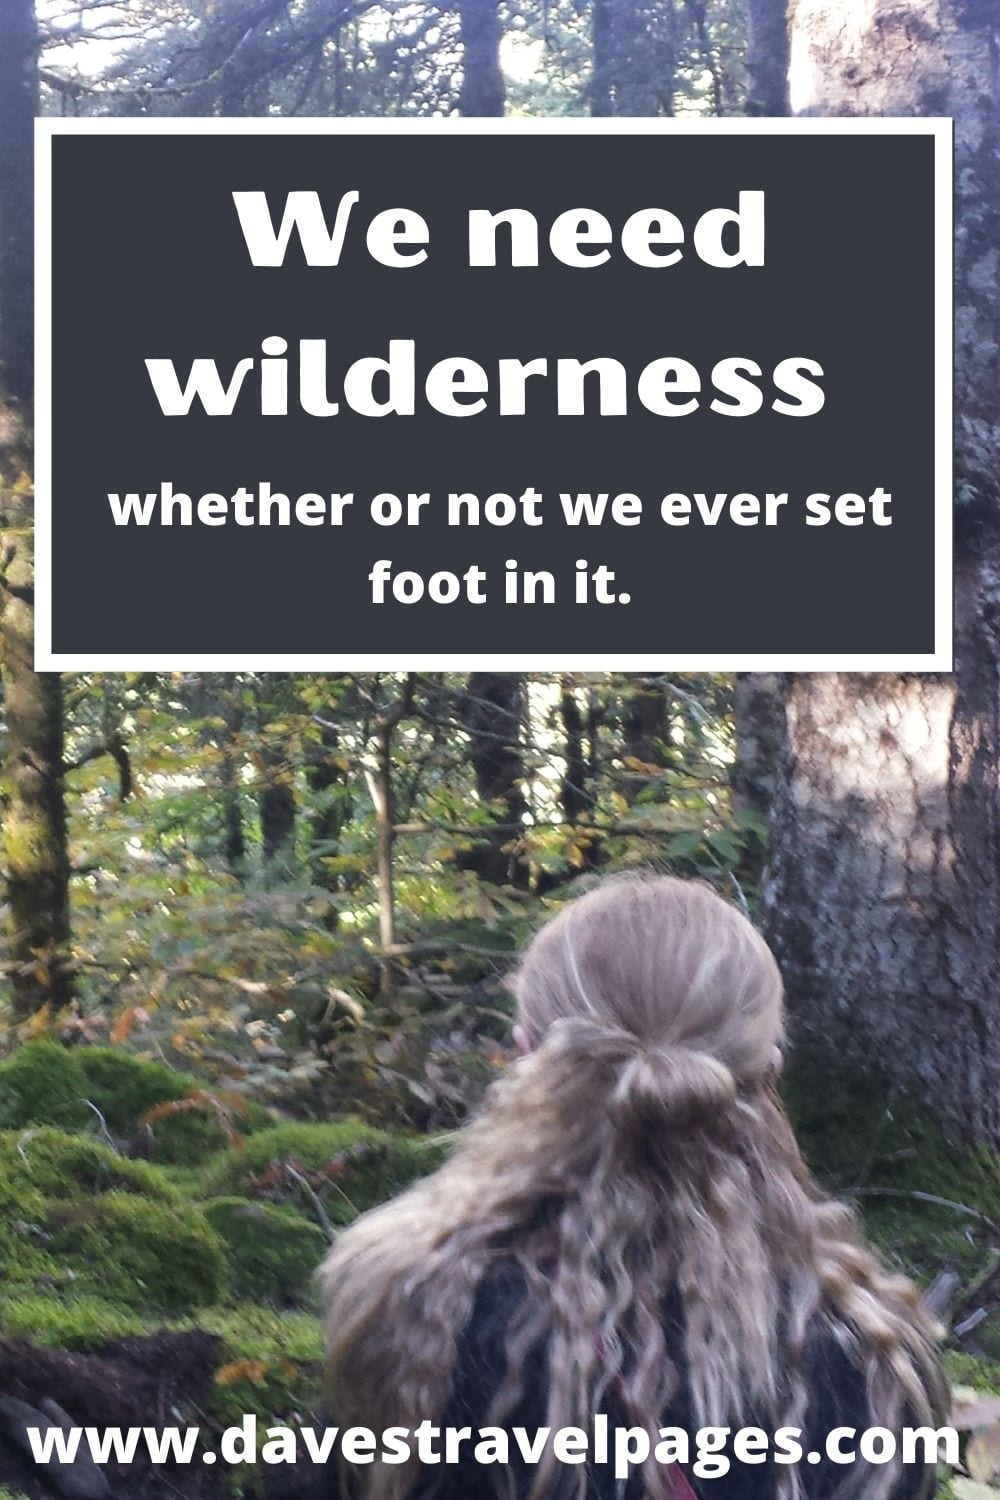 We need wilderness whether or not we ever set foot in it - Quote